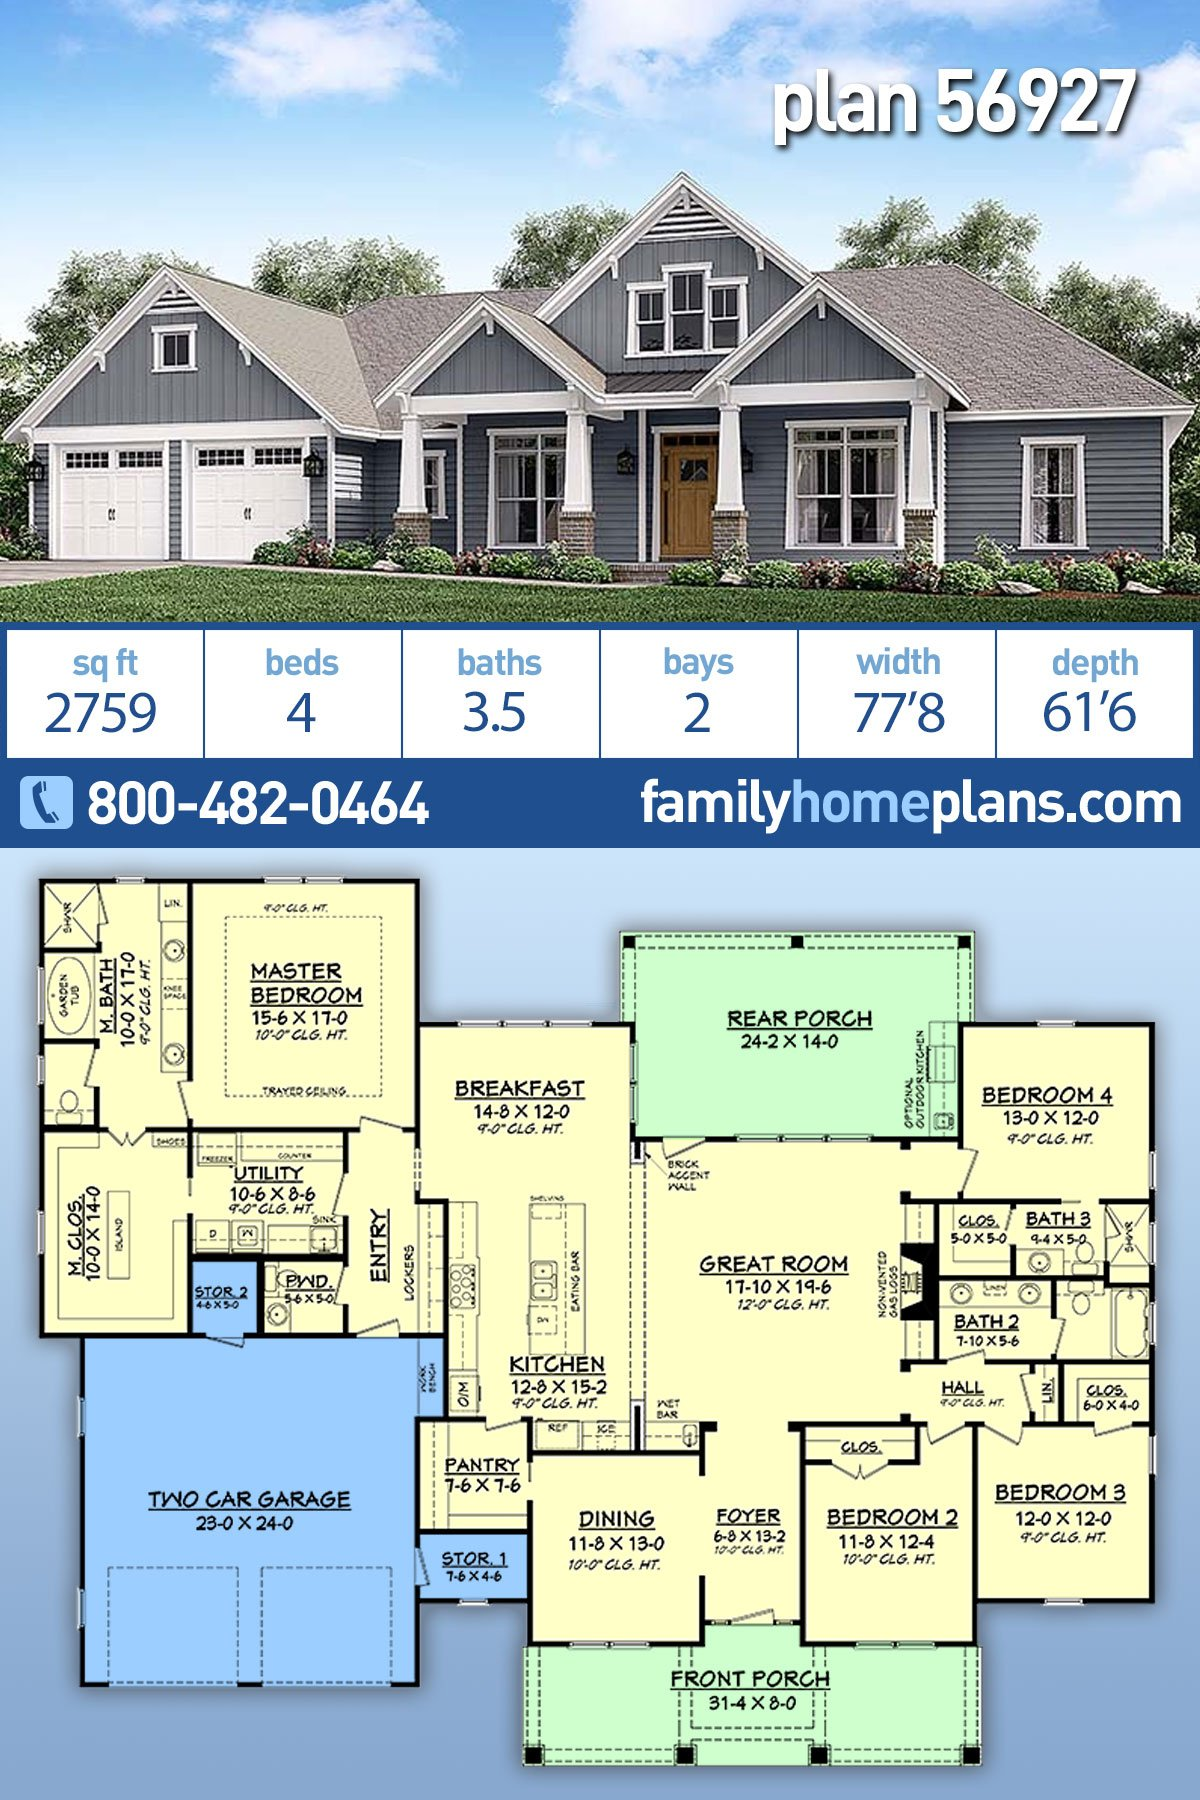 Country , Craftsman , Traditional House Plan 56927 with 4 Beds, 4 Baths, 2 Car Garage